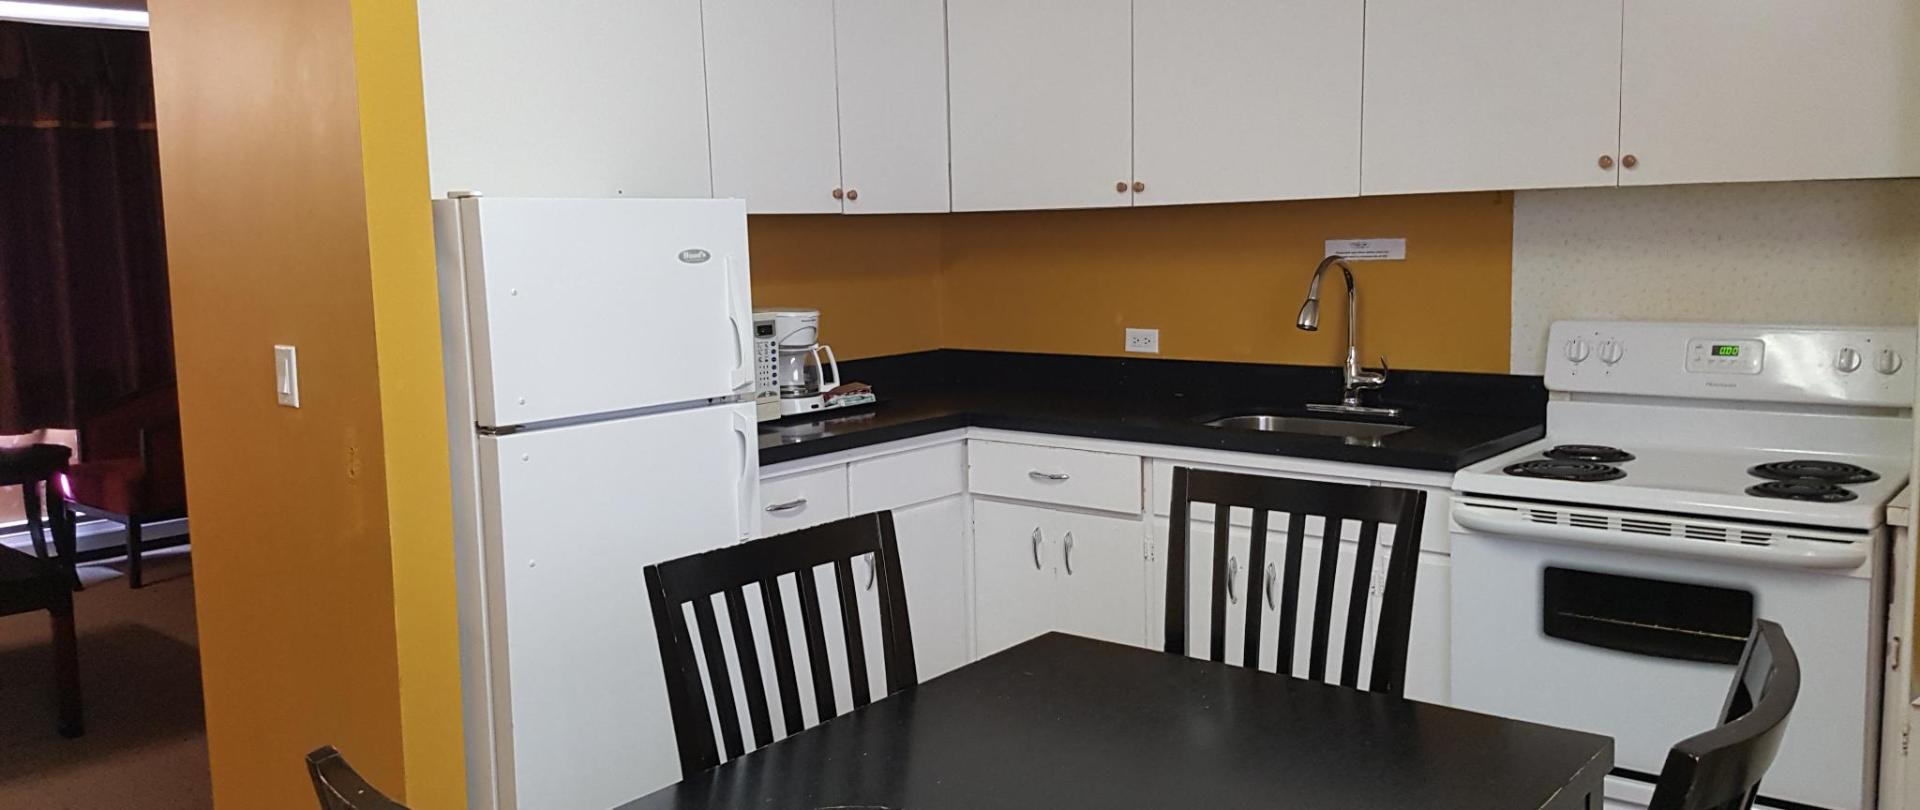 Two Bedroom Kitchen Suite -- Full Kitchen.jpg